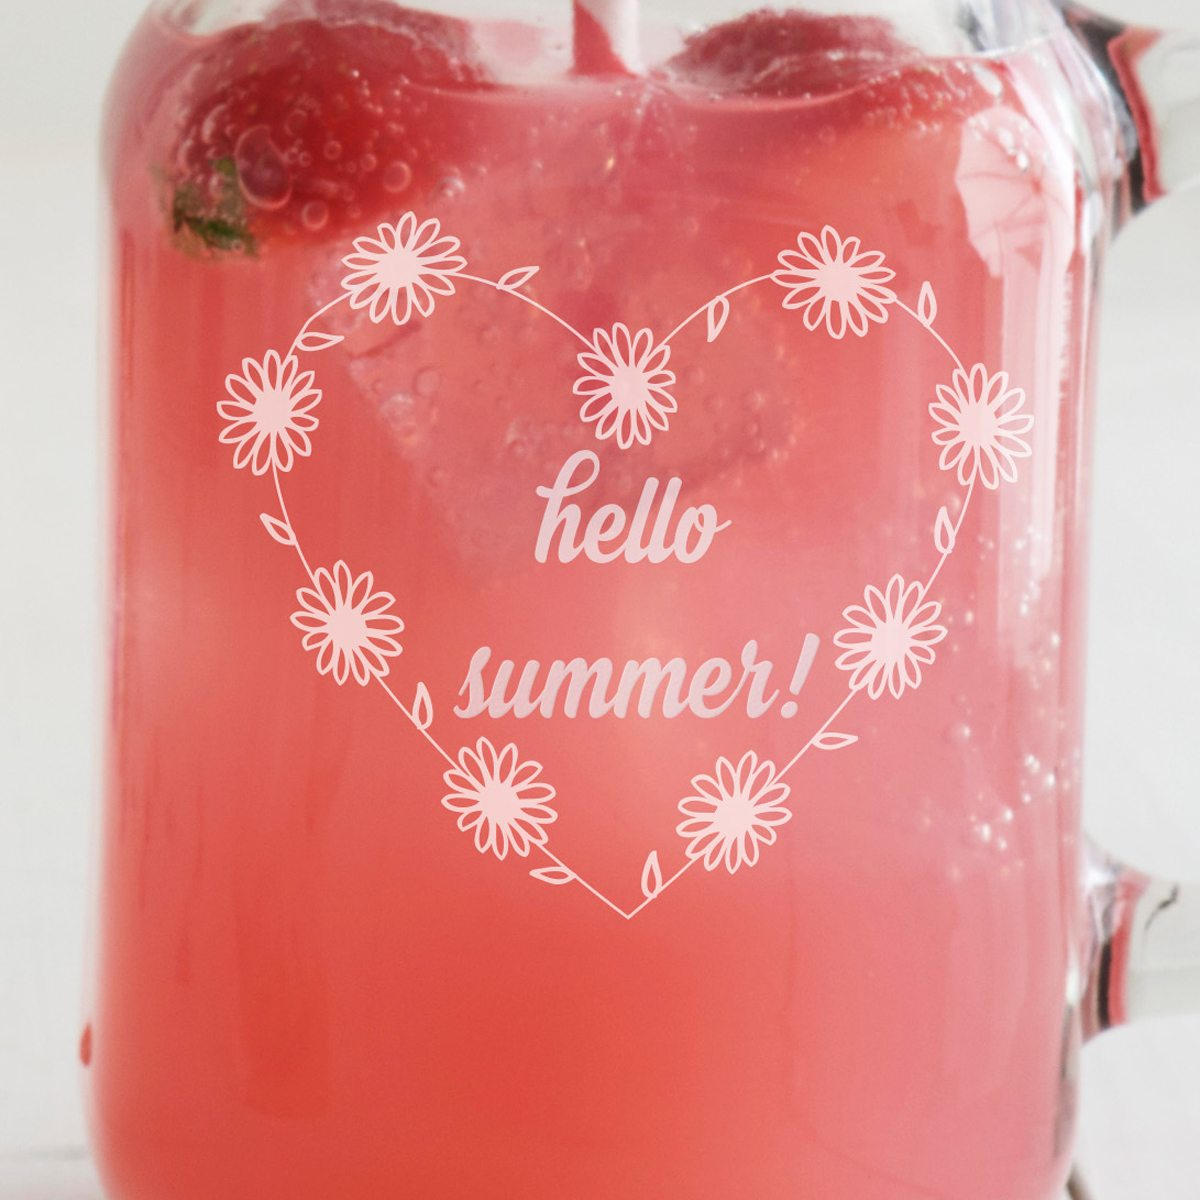 Personalised Daisy Heart Handled Drinking Jar